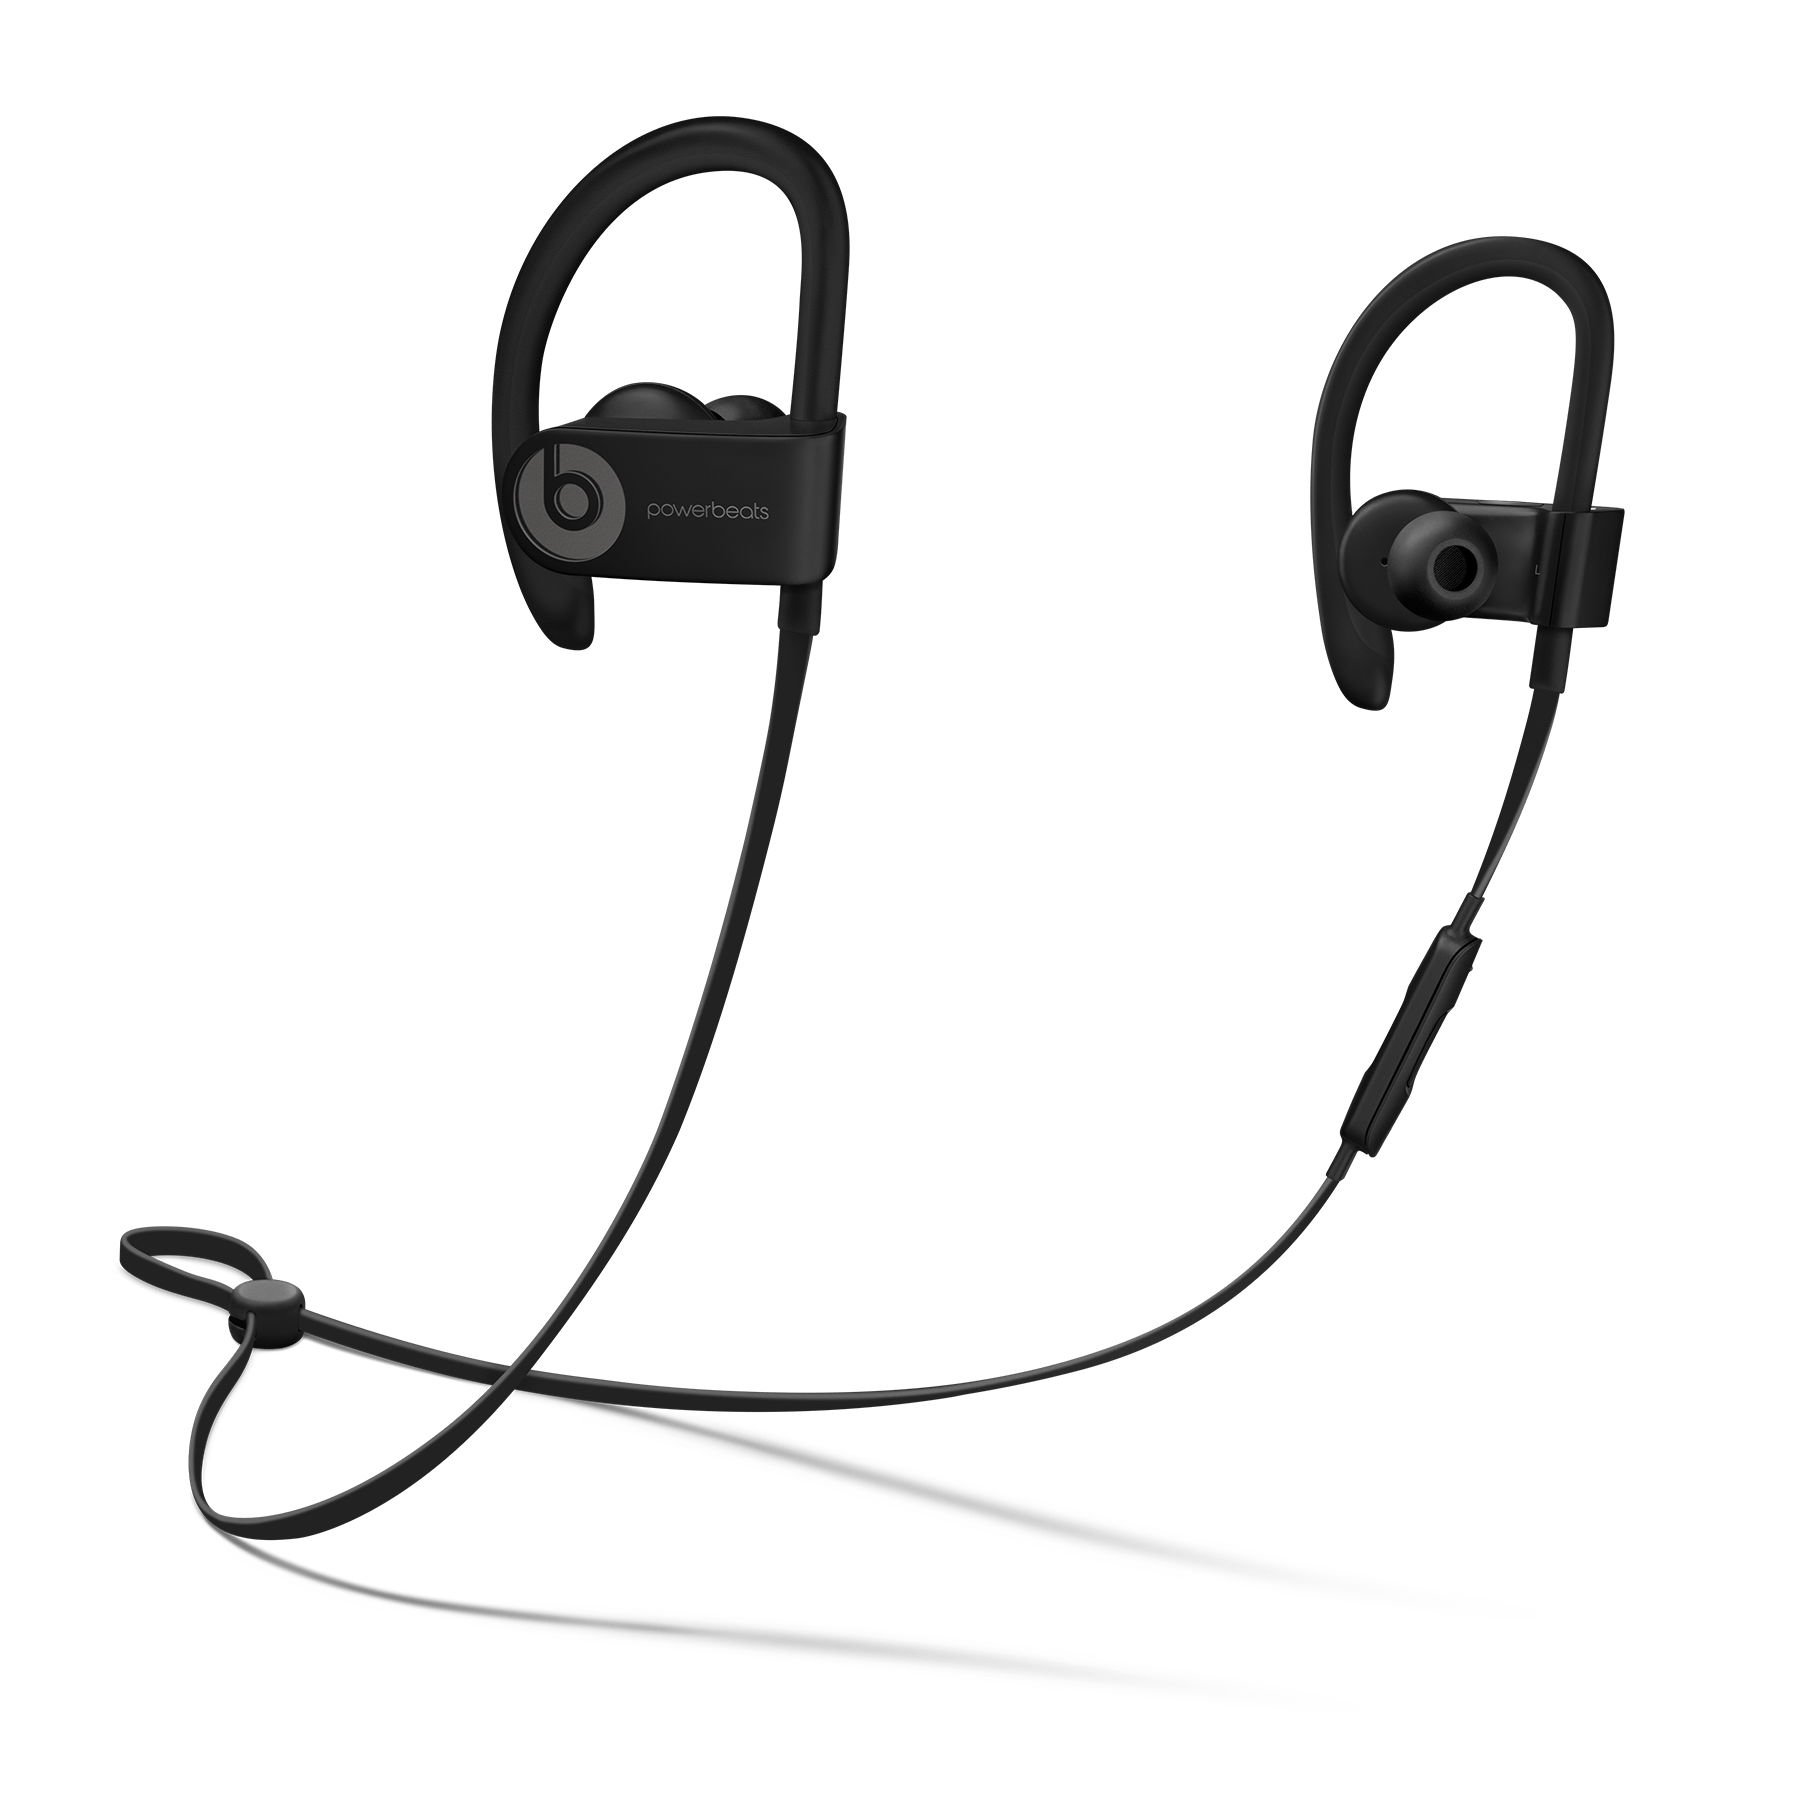 Powerbeats3 Wireless - Beats by Dre 2a64d7b92d94